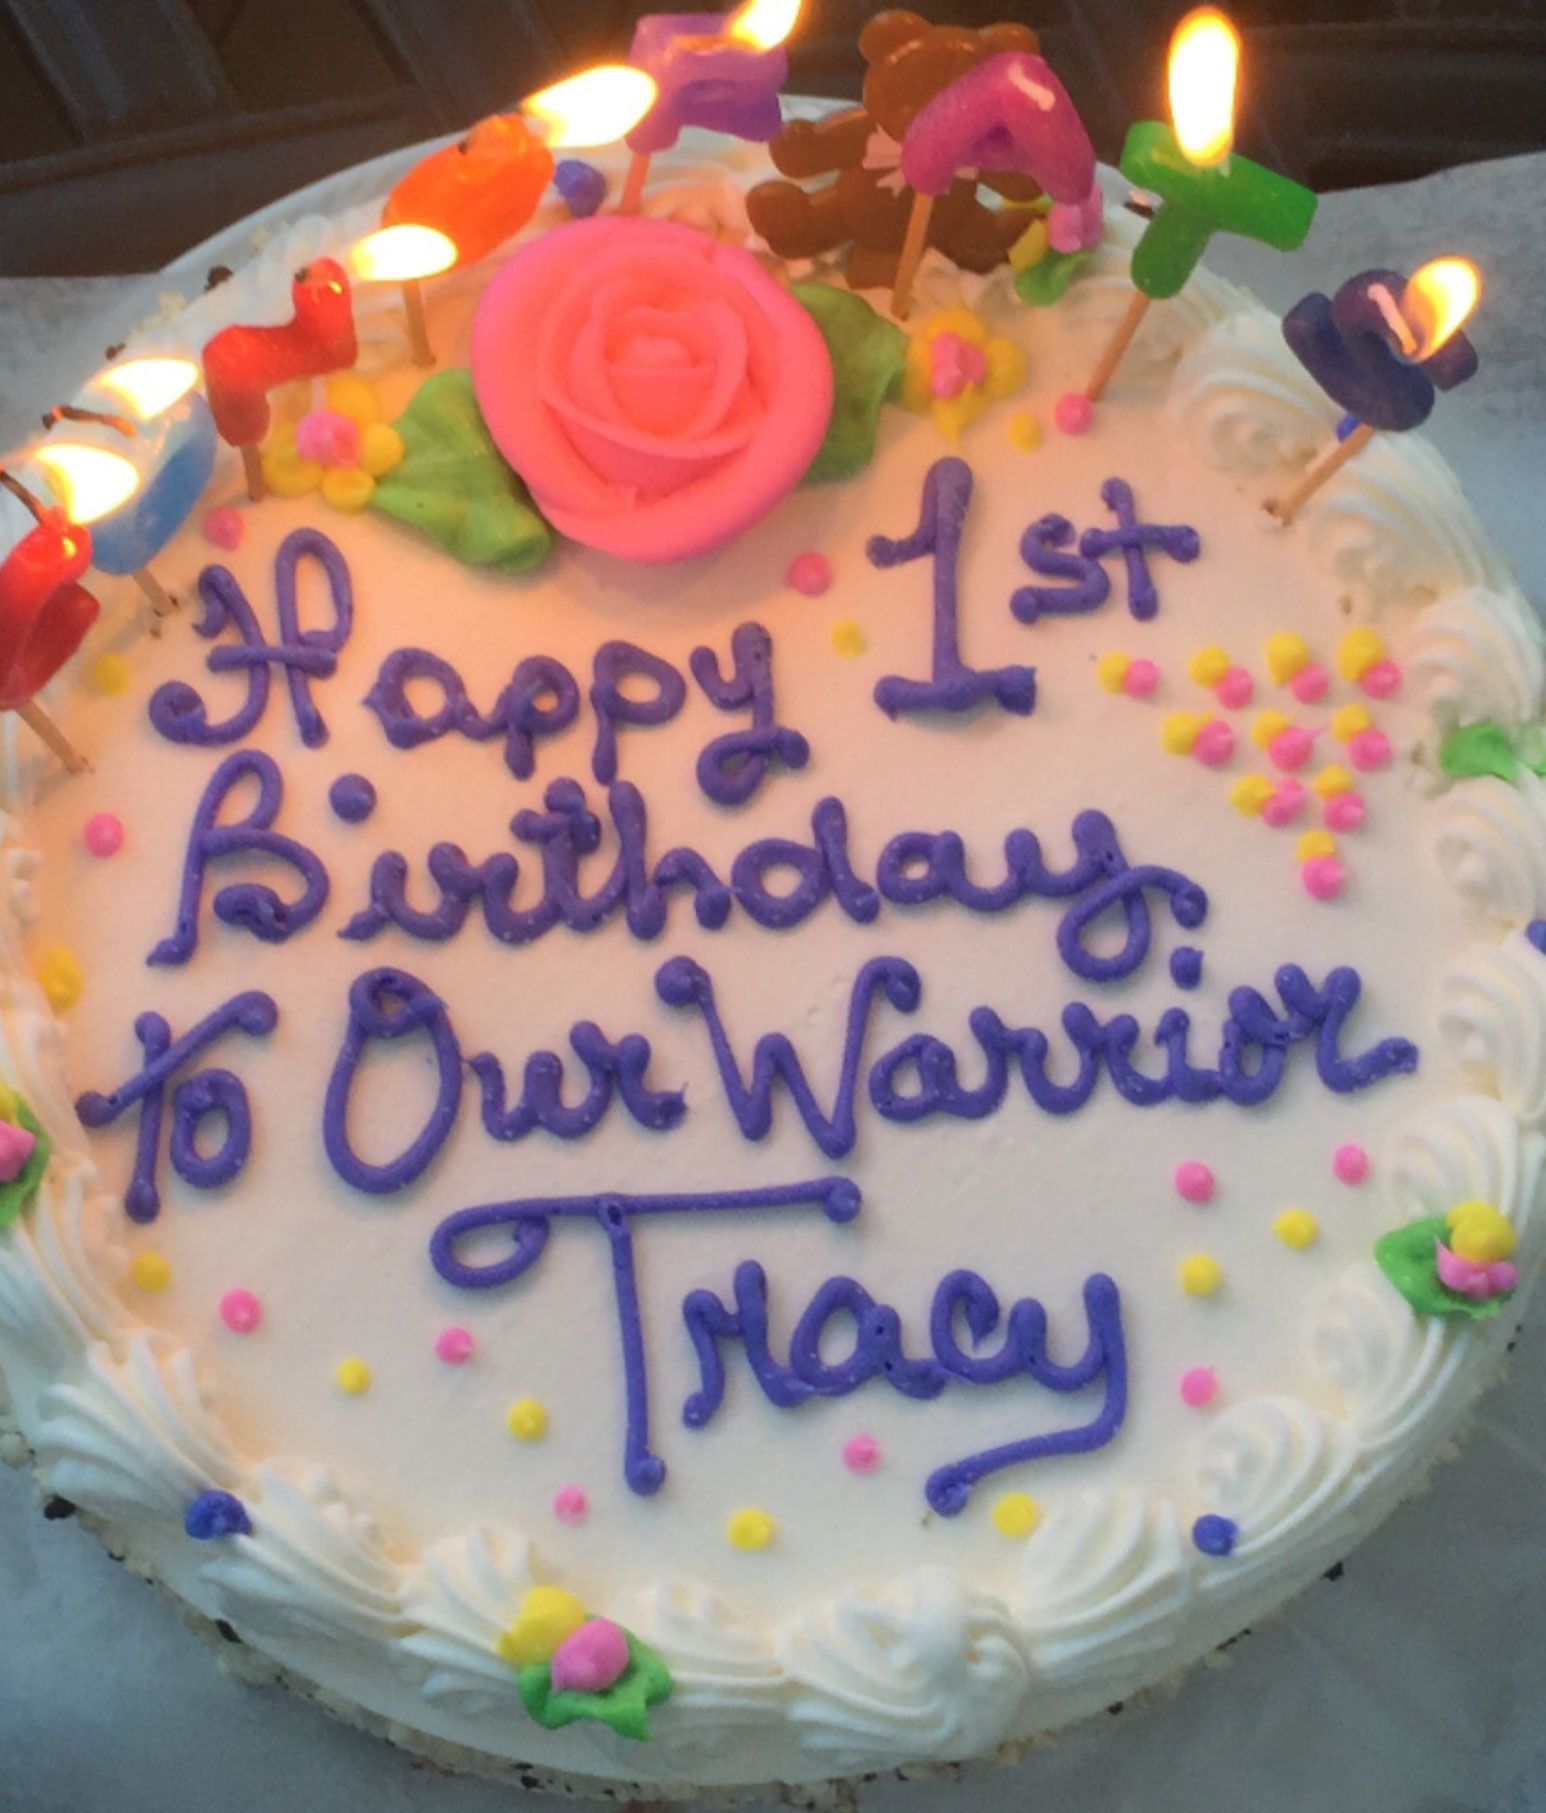 "A cake with candles and writing that says: ""Happy 1st Birthday To Our Warrior Tracy"""